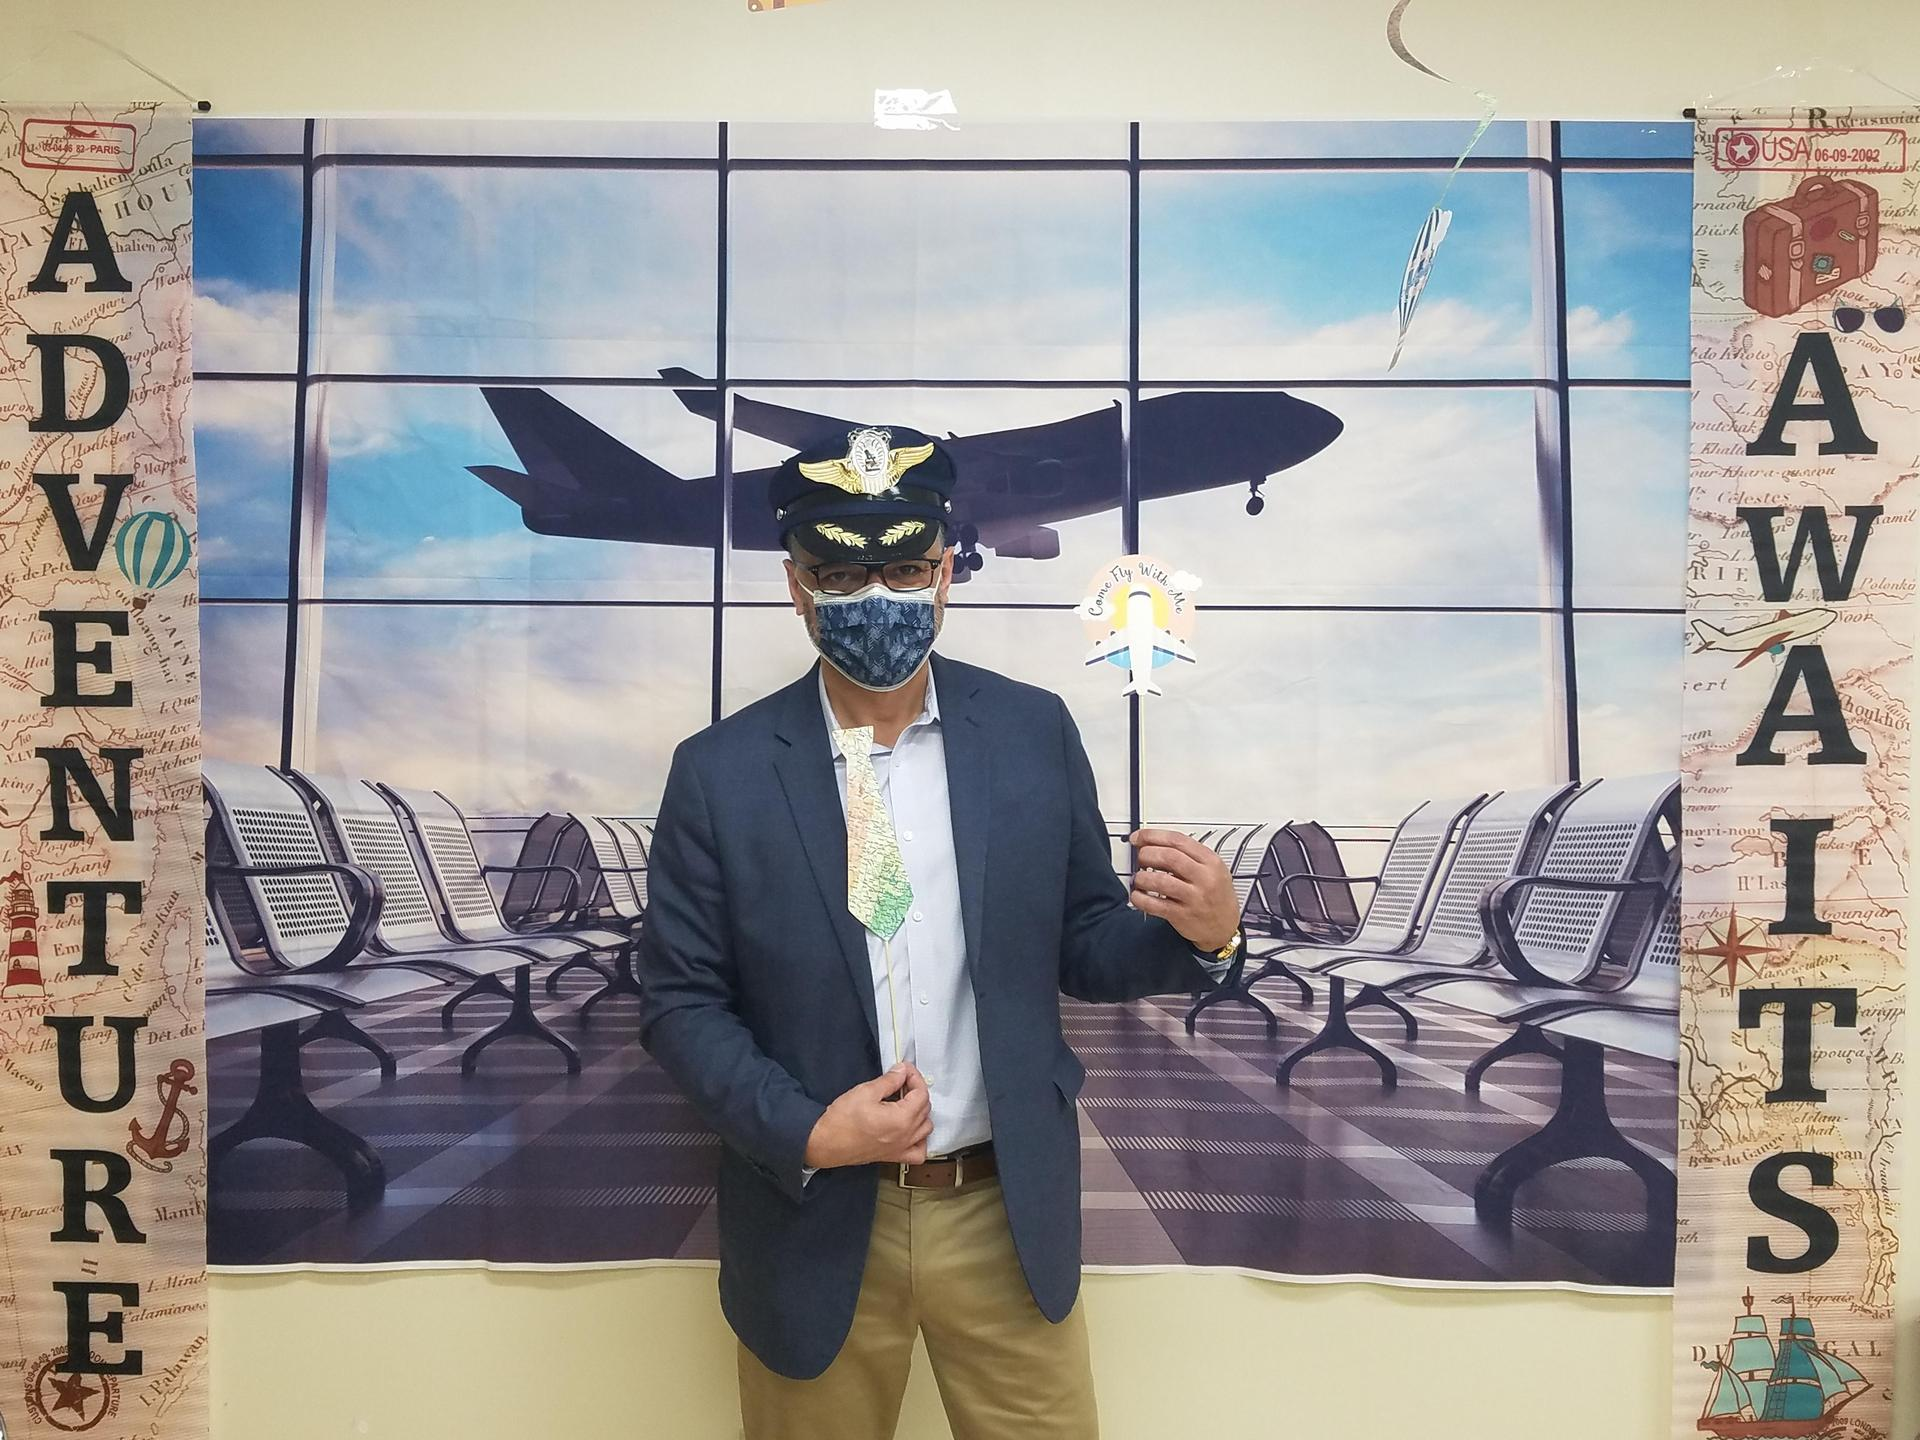 Man dressed as a piolet standing in front of an airport poster